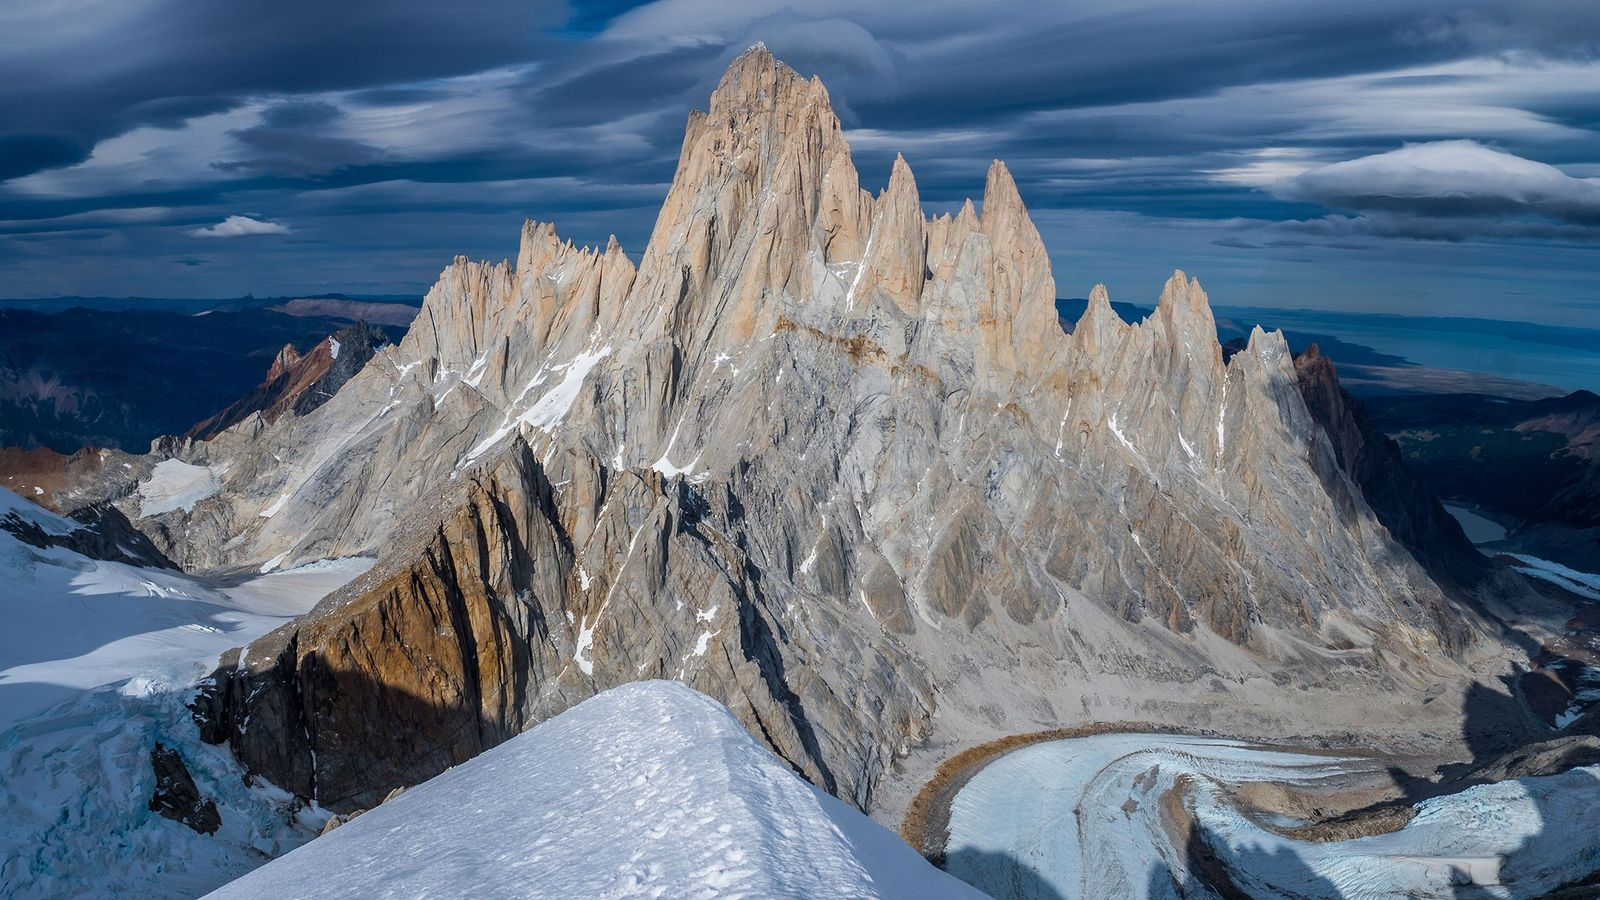 The iconic spires of the Fitz Roy Massif have tempted many climbers. In 2002, the late ...